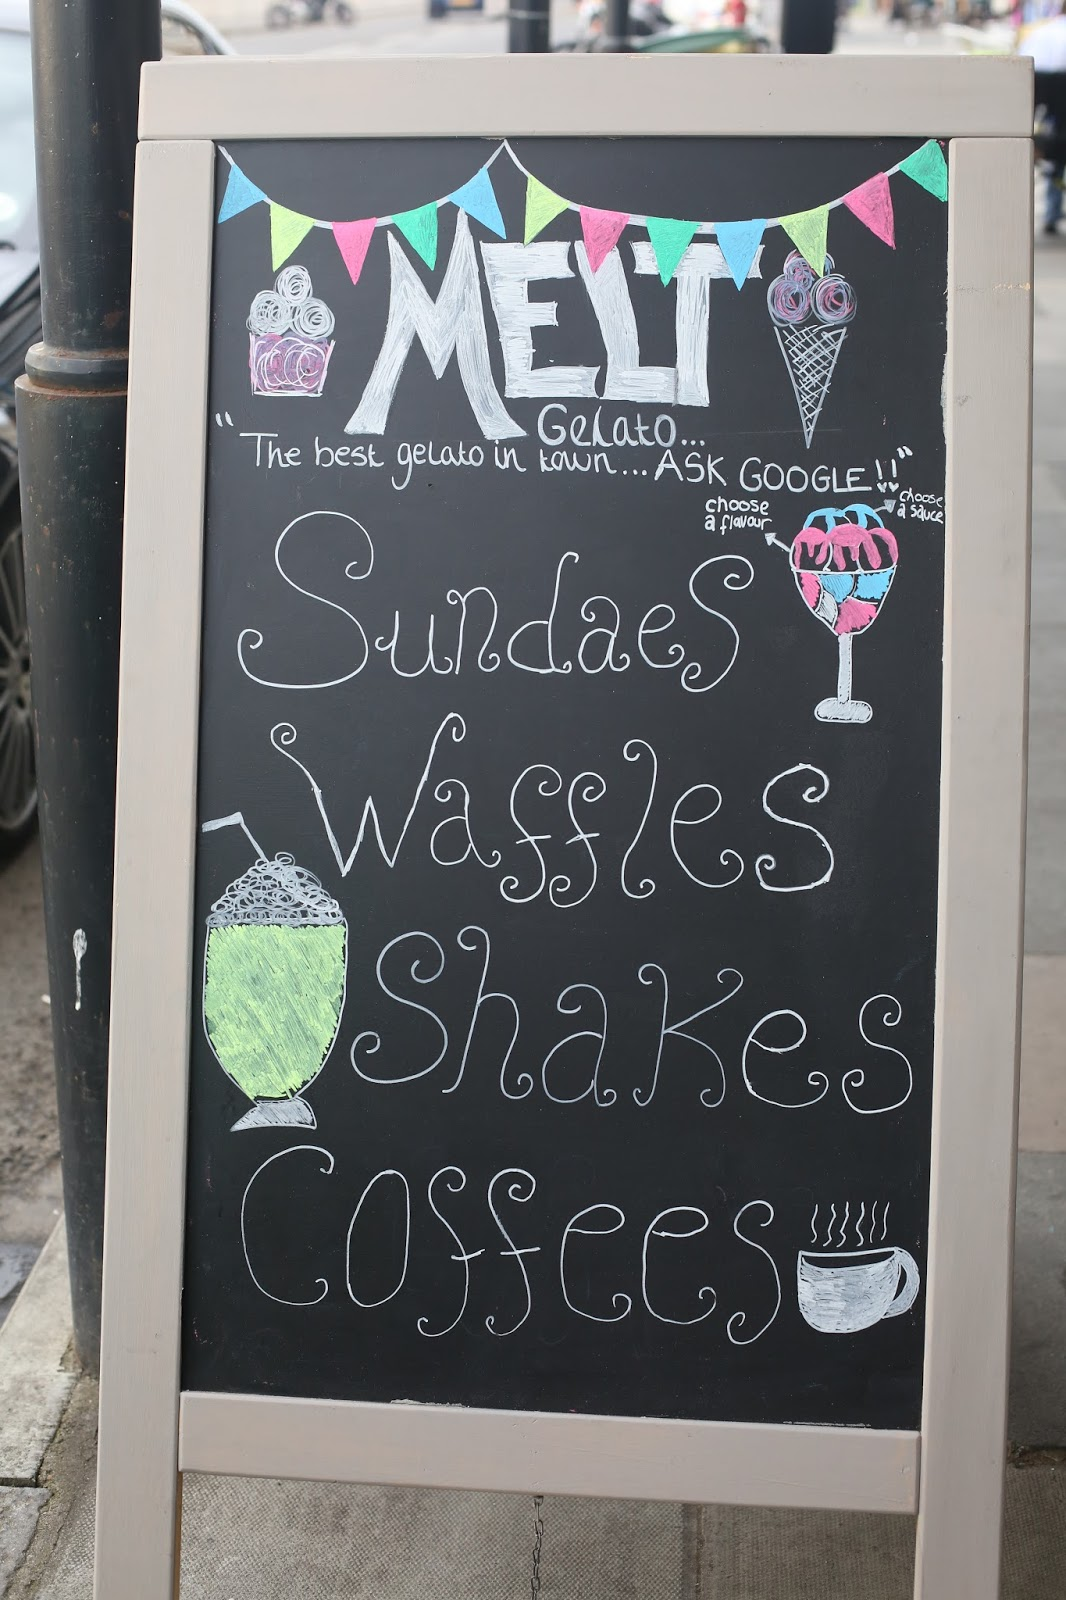 melt margate